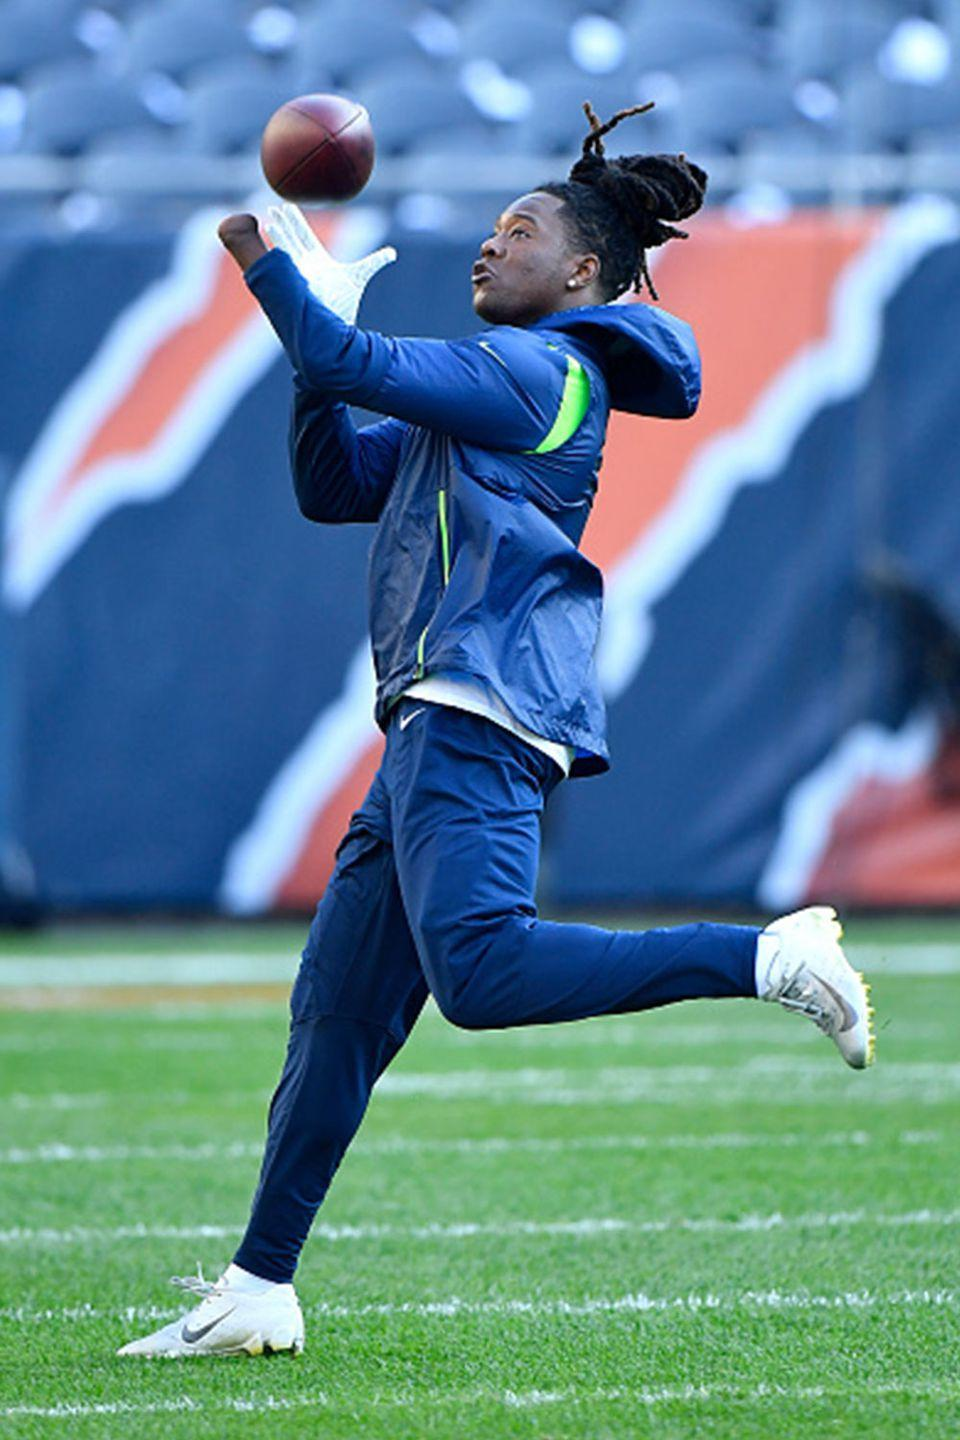 <p>Shaquem Griffin, the first one-handed player to be drafted by the NFL, made his way to the Seattle Seahawks this year. His story is an inspiration to all. </p>